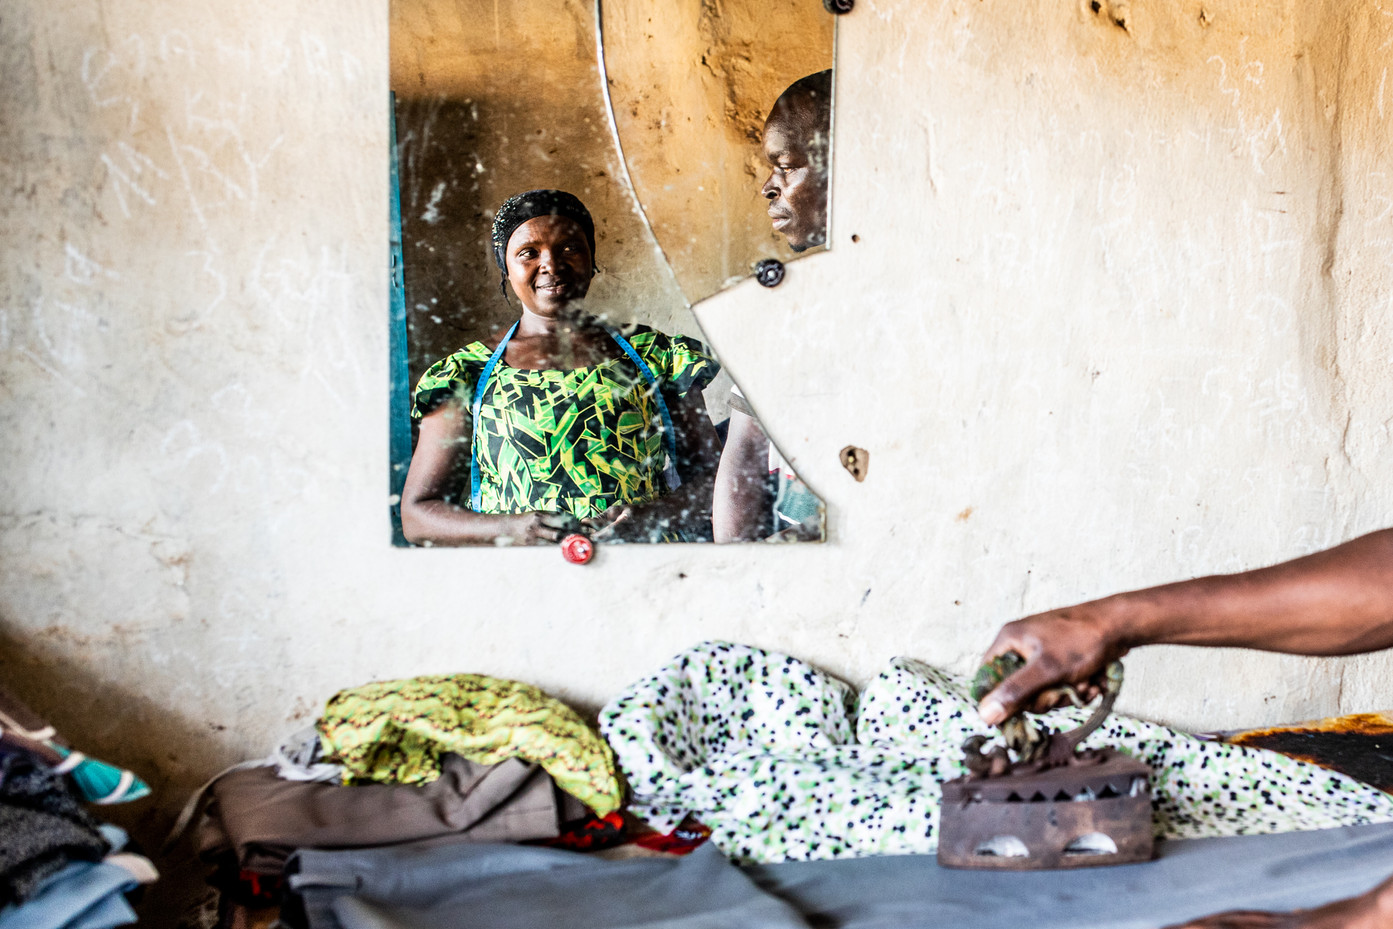 Iramkunda Francine has lived in Nakivale for almost twenty years. She has started her own sewing business.